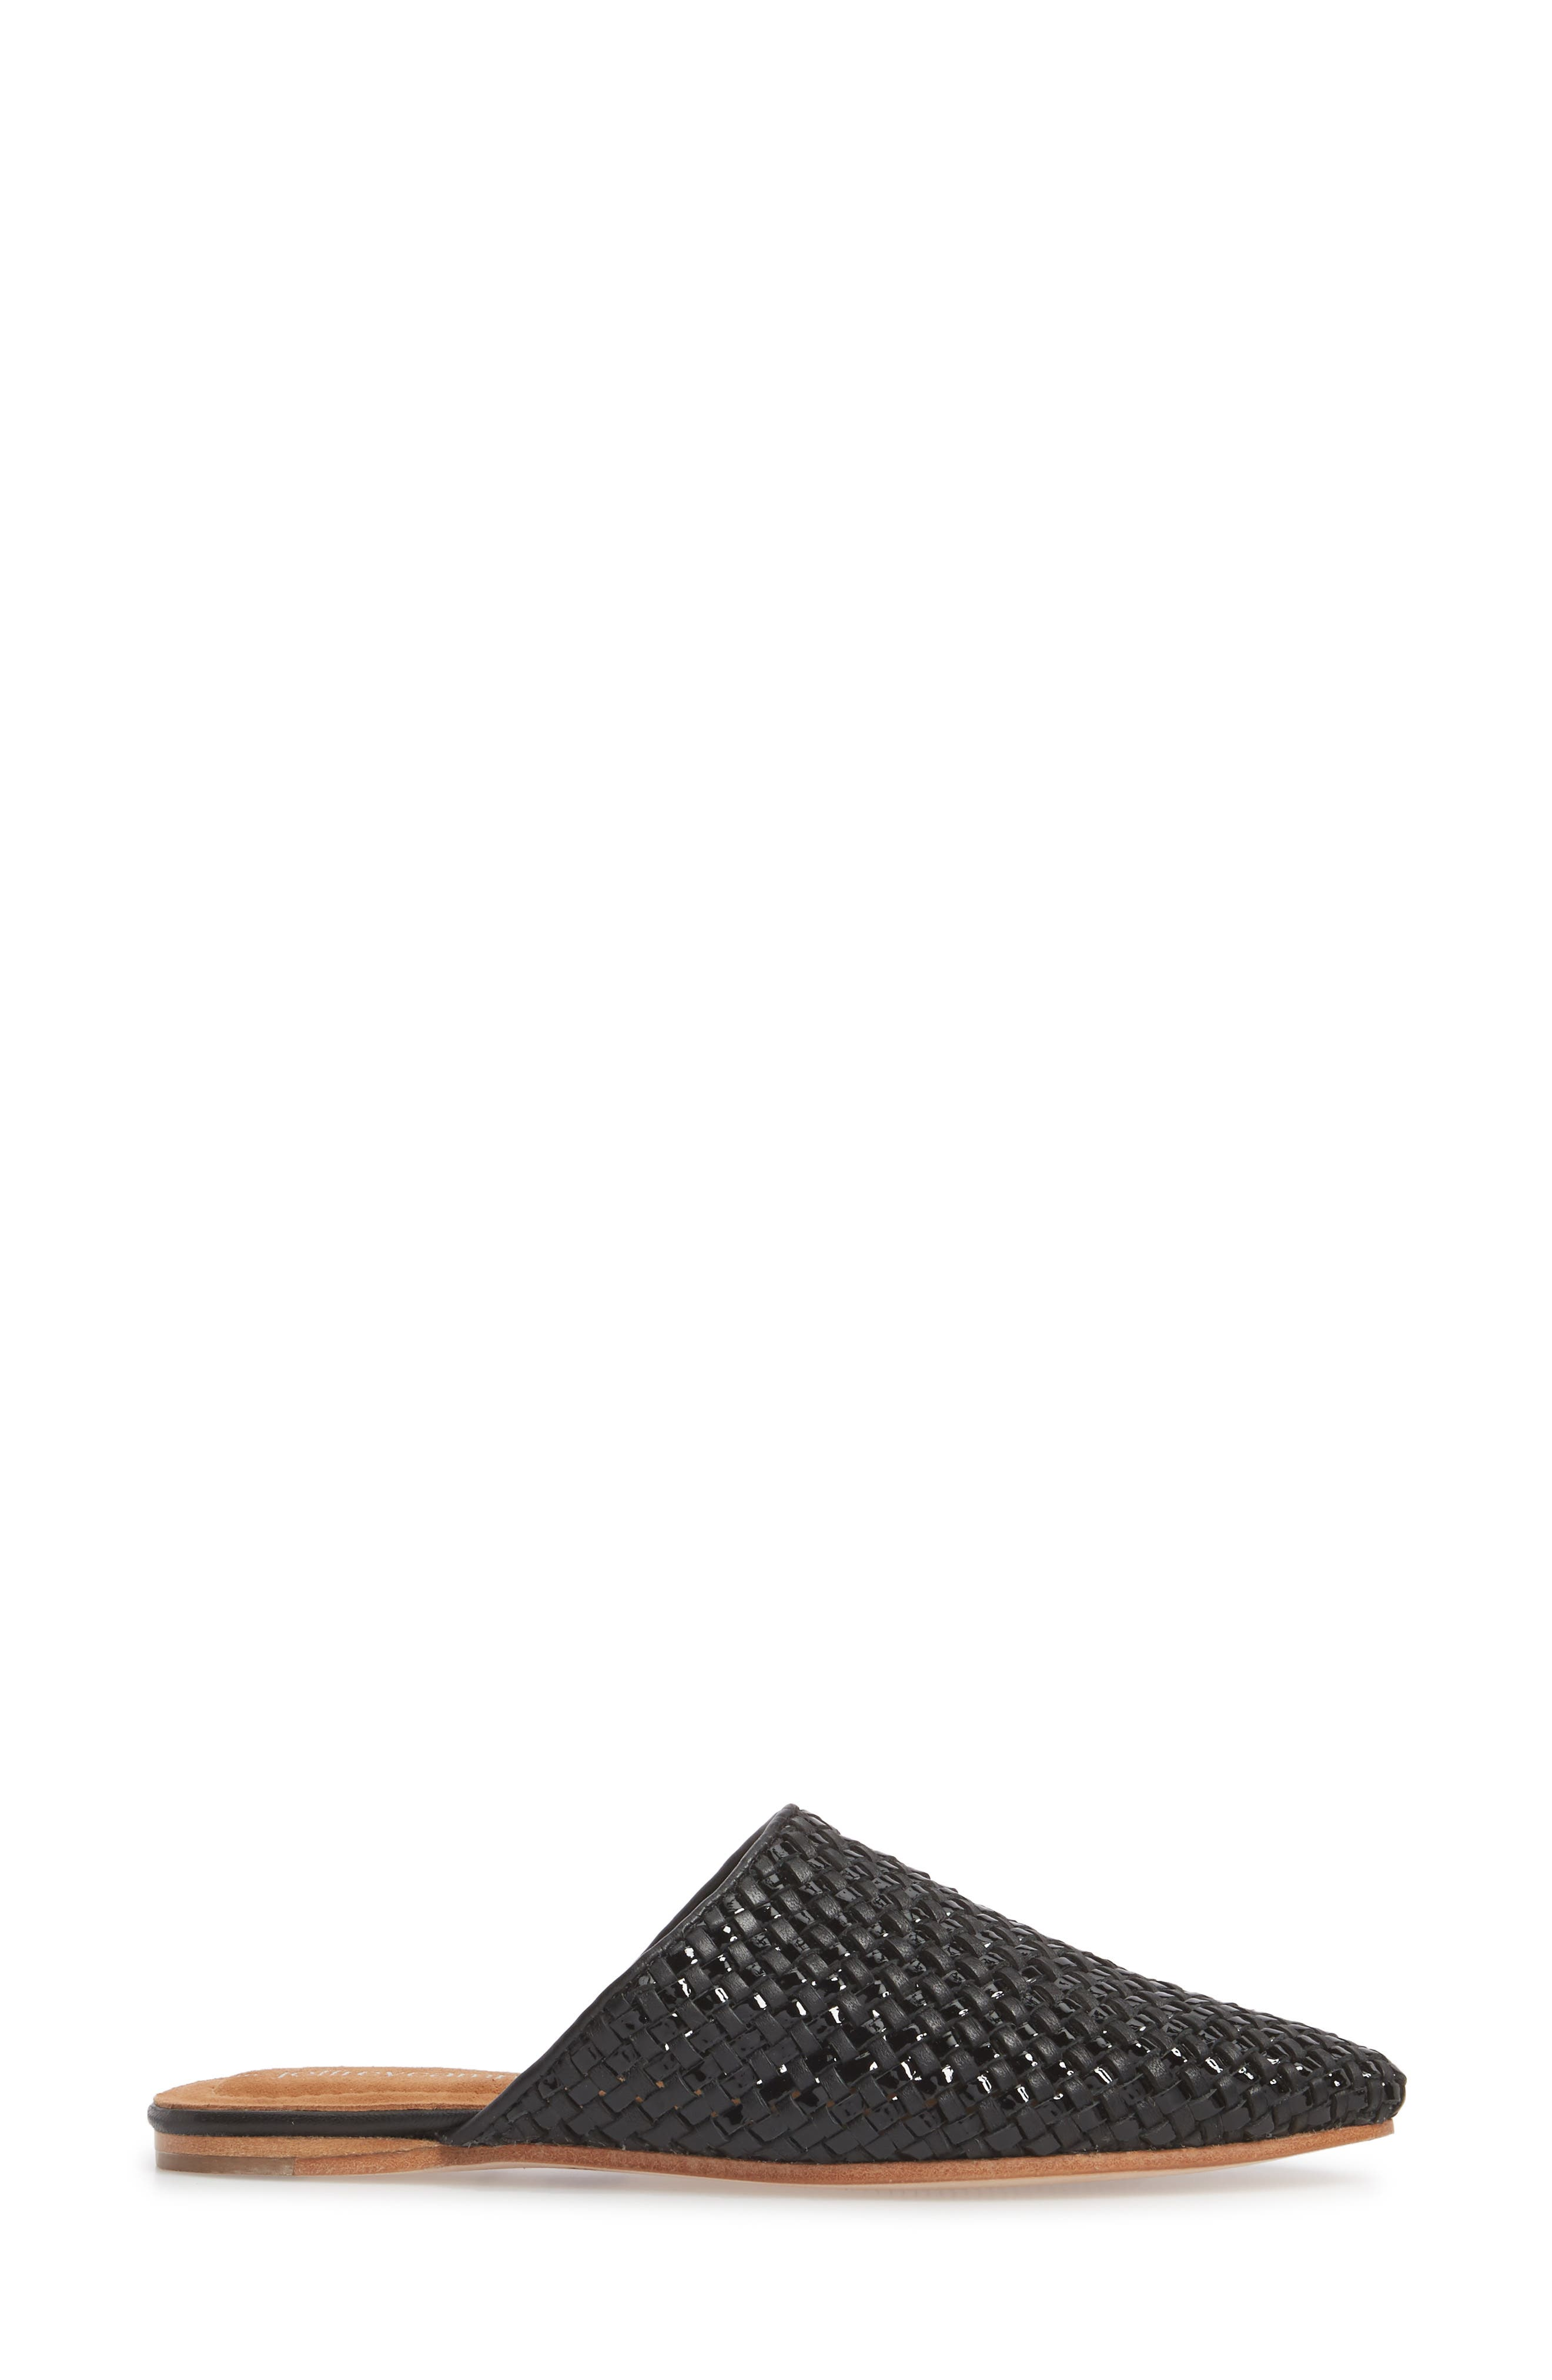 Dashi Woven Mule,                             Alternate thumbnail 3, color,                             BLACK PATENT